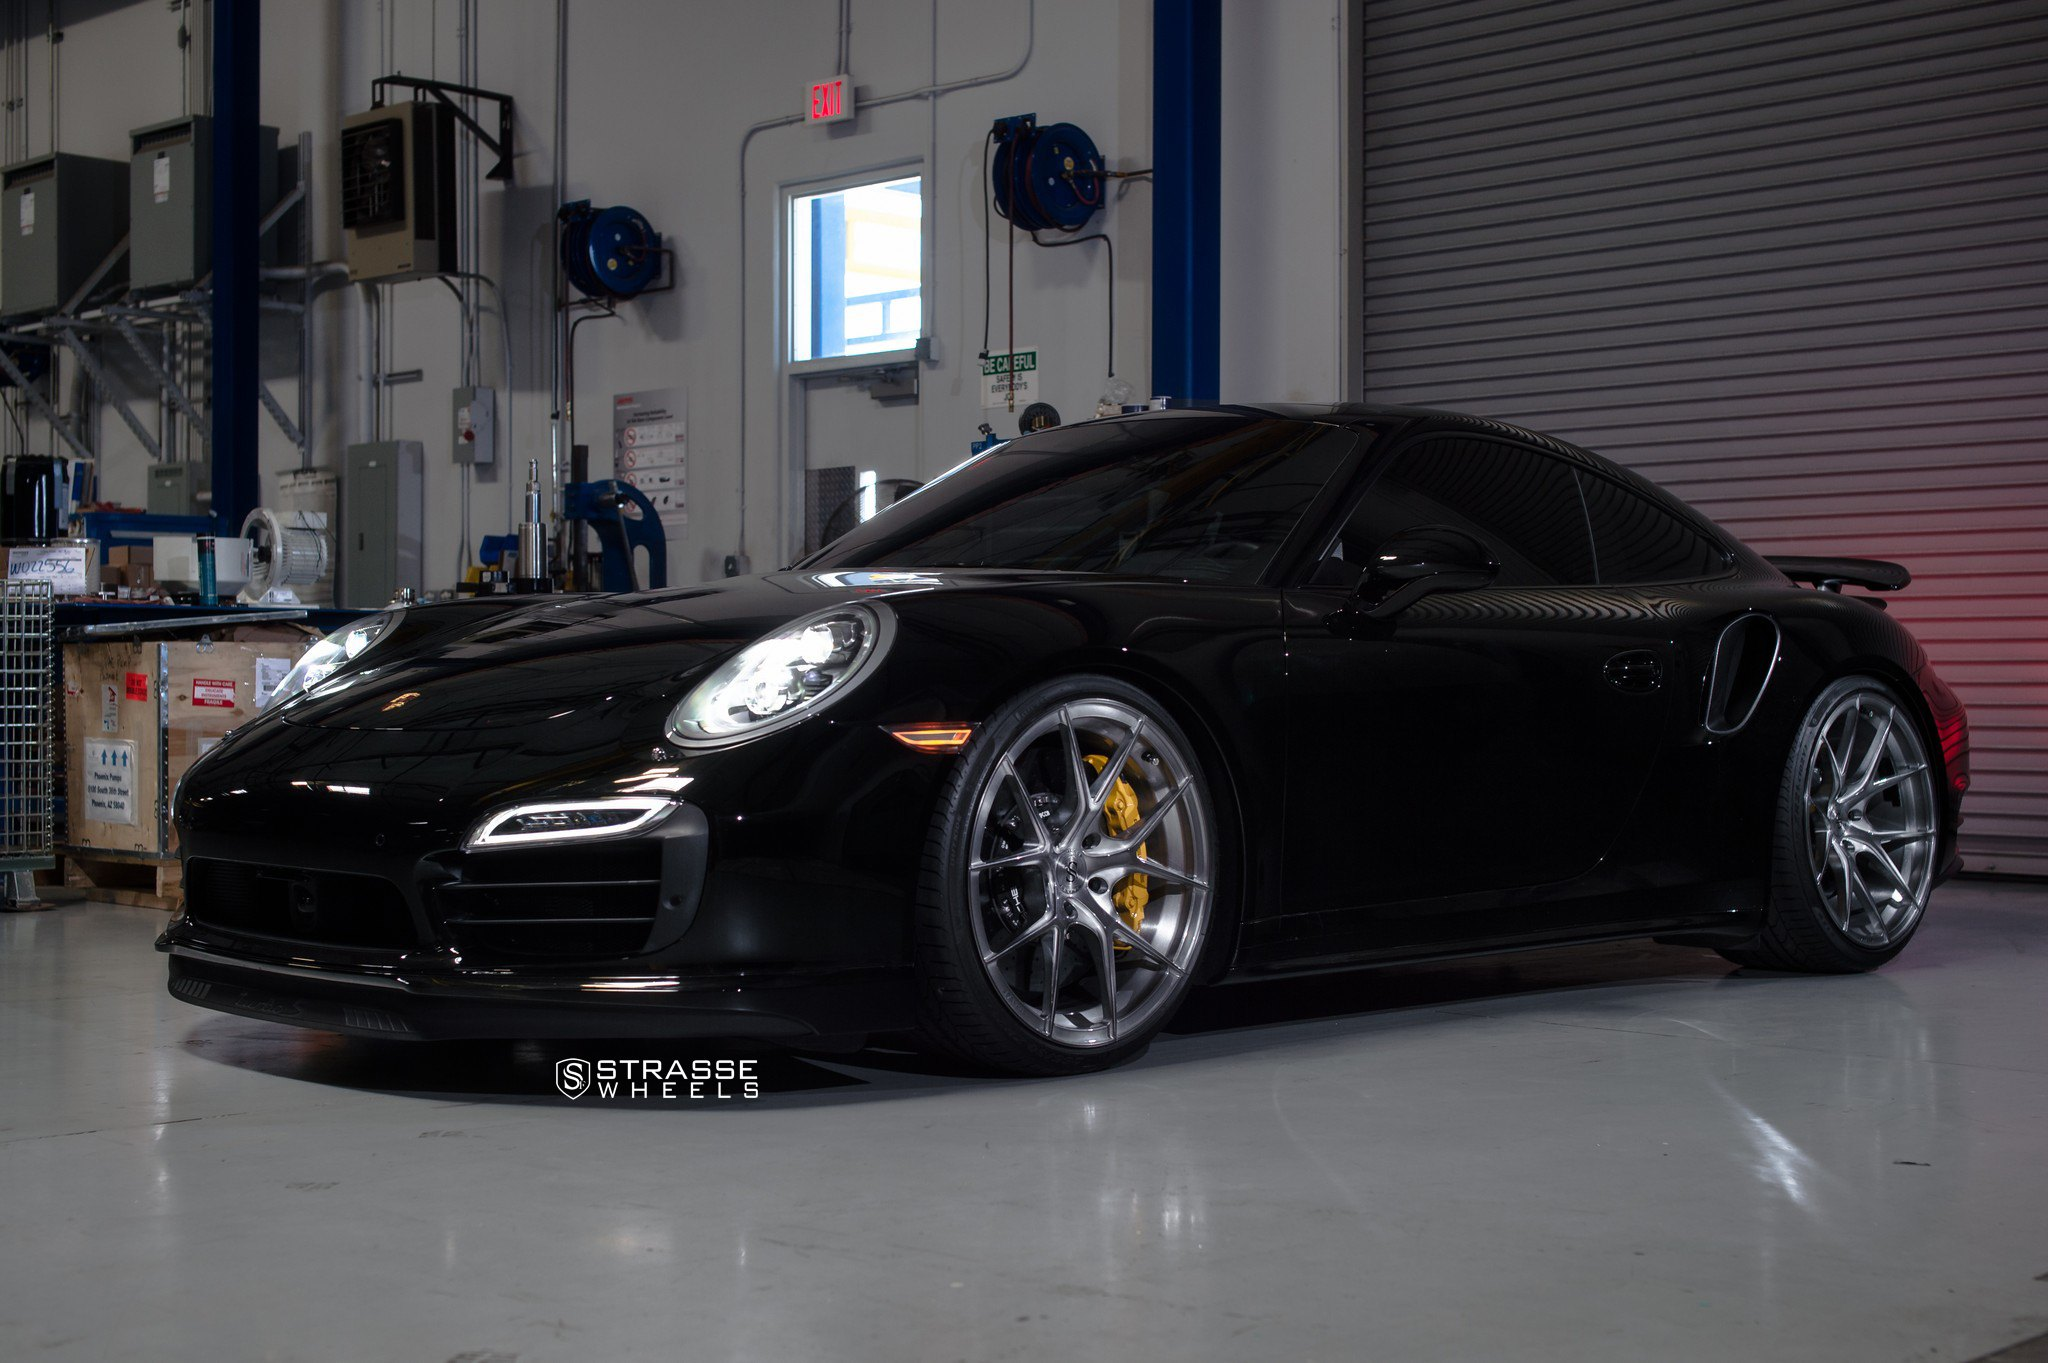 Black Porsche 911 Looking Mysterious With Crystal Clear